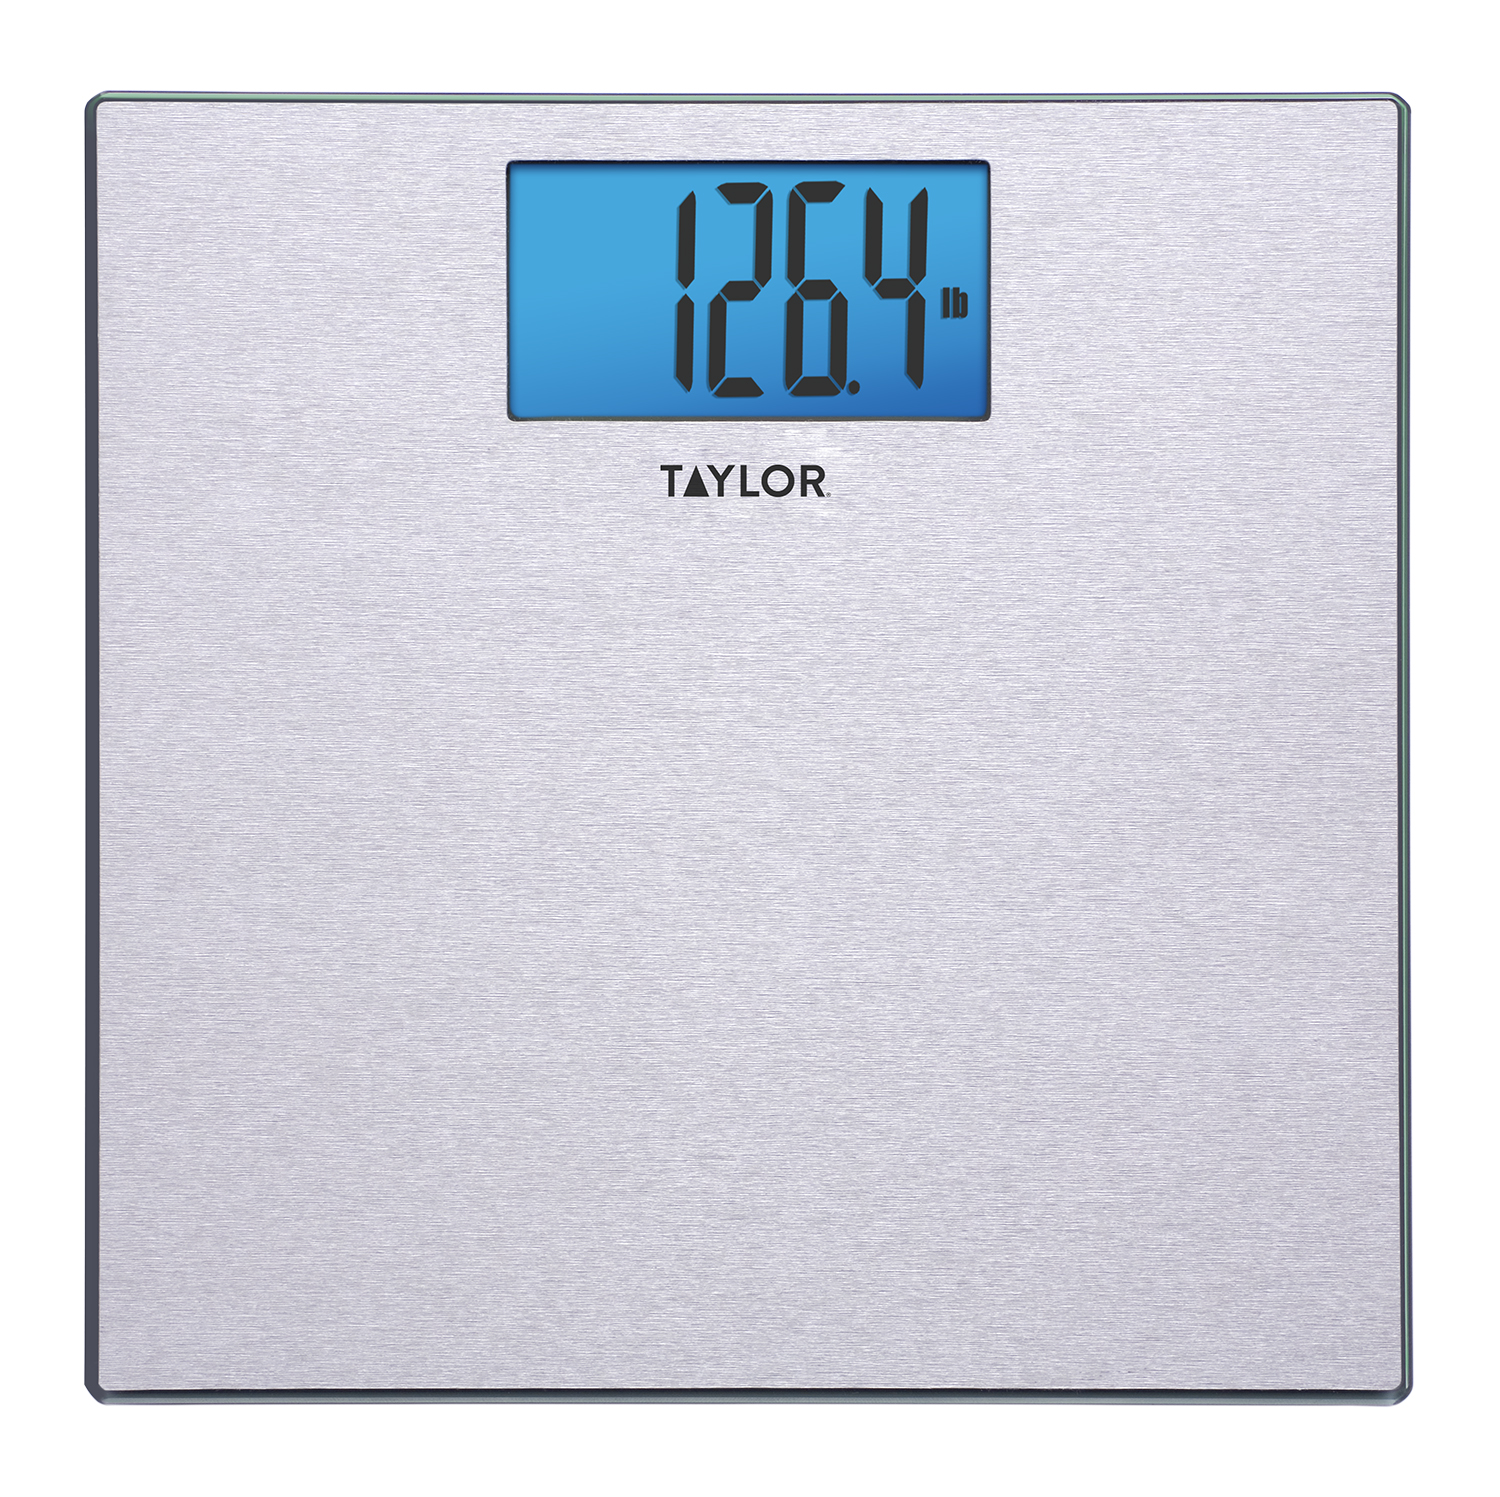 Taylor 7413 Textured Stainless Steel Digital Scale